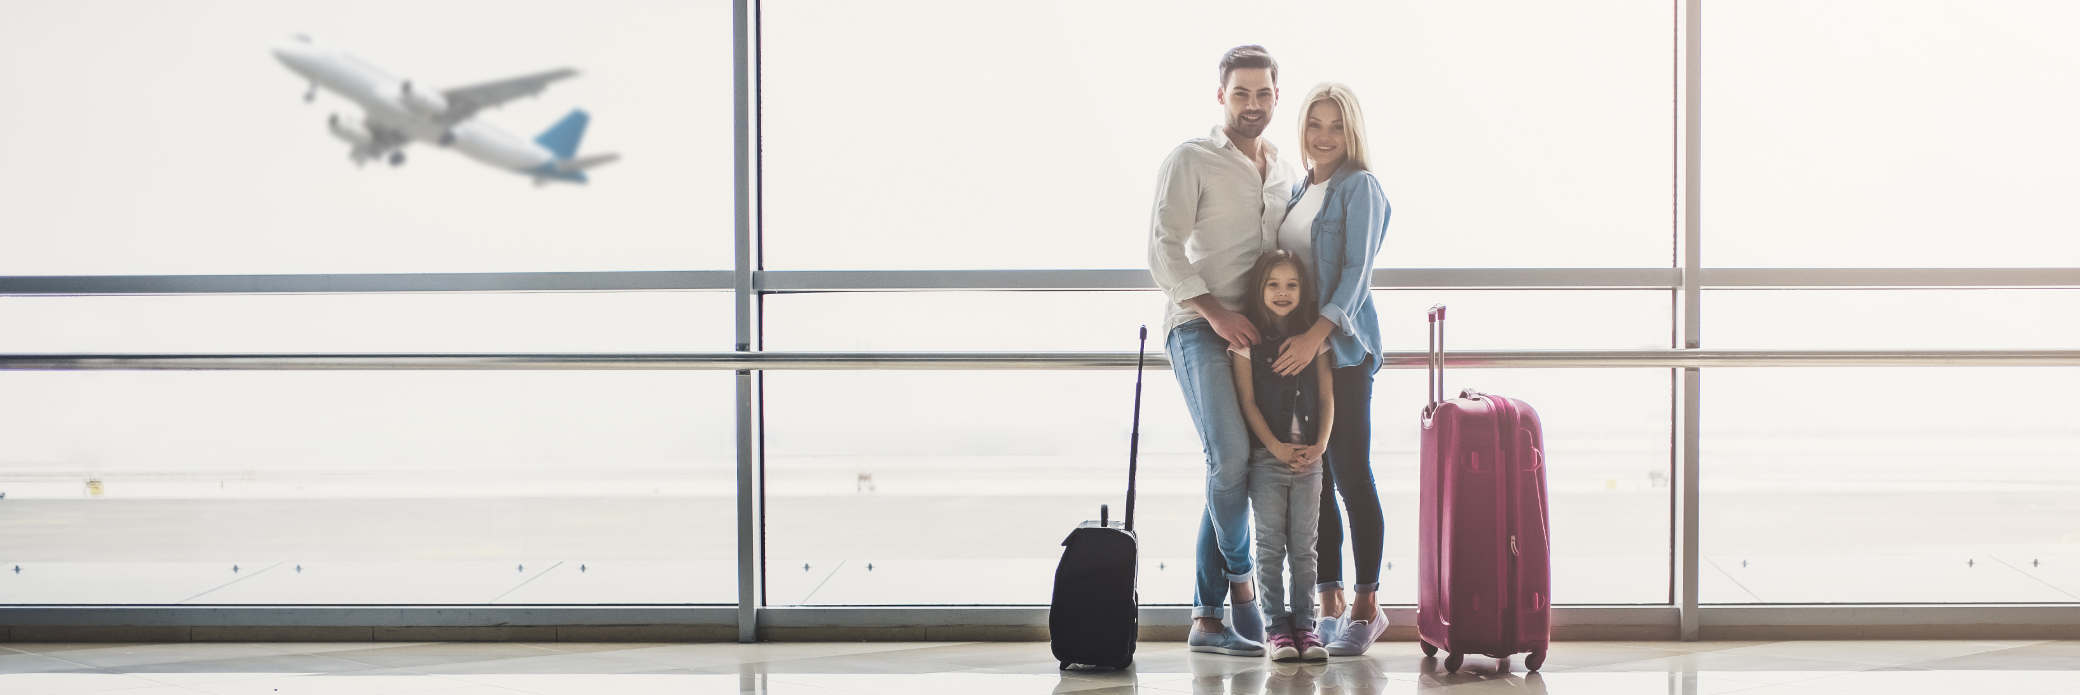 family_airport